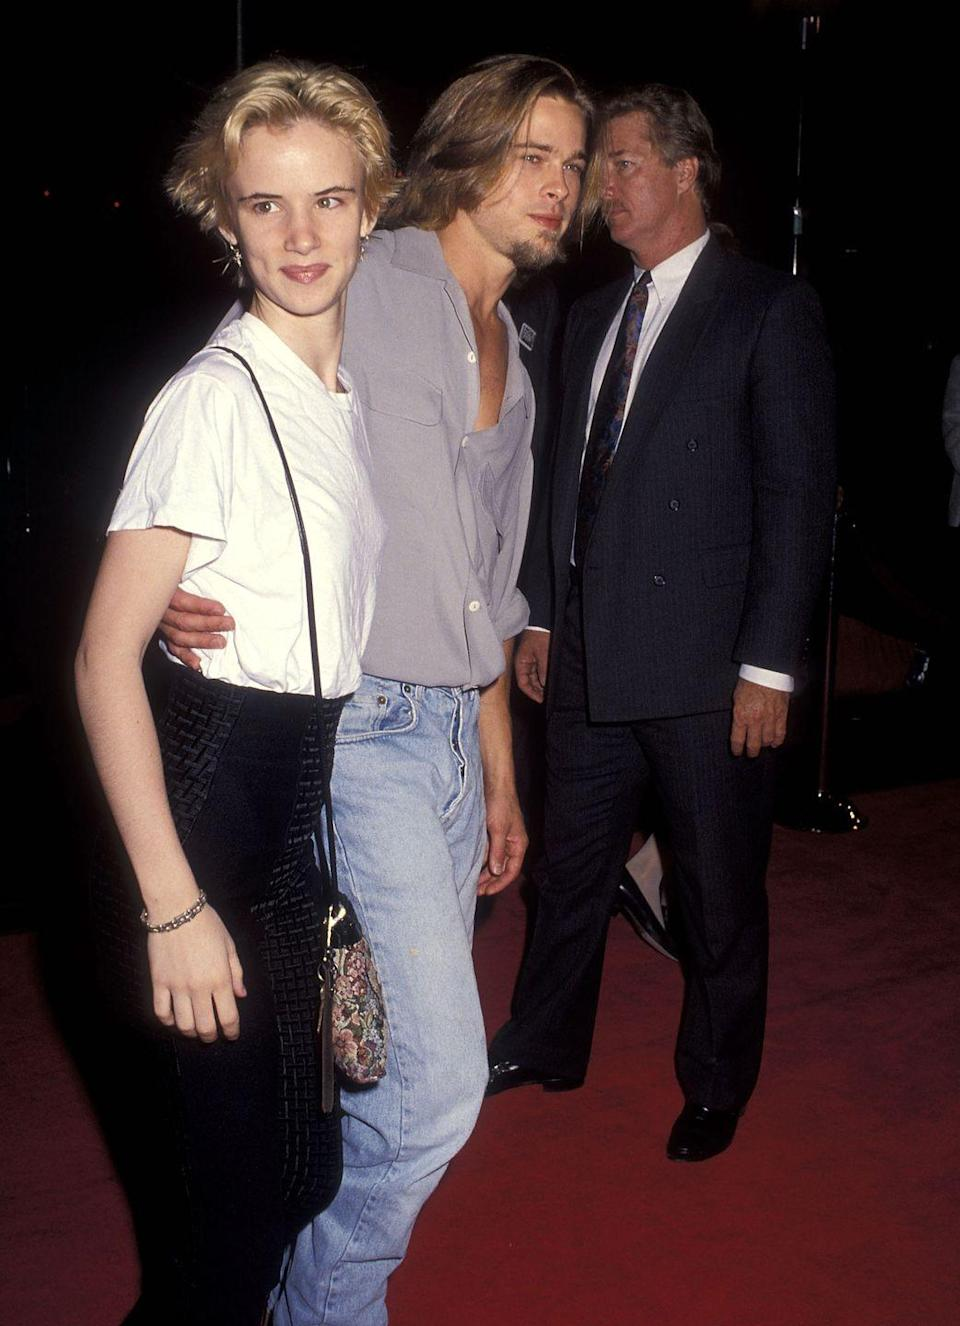 <p>In the '90s, Juliette Lewis was at the top of her game with roles in successful films like <em>Cape Fear, Husbands and Wives, Kalifornia, What's Eating Gilbert Grape, Natural Born Killers</em>, and <em>The Basketball Diaries</em>, to name a few. </p>